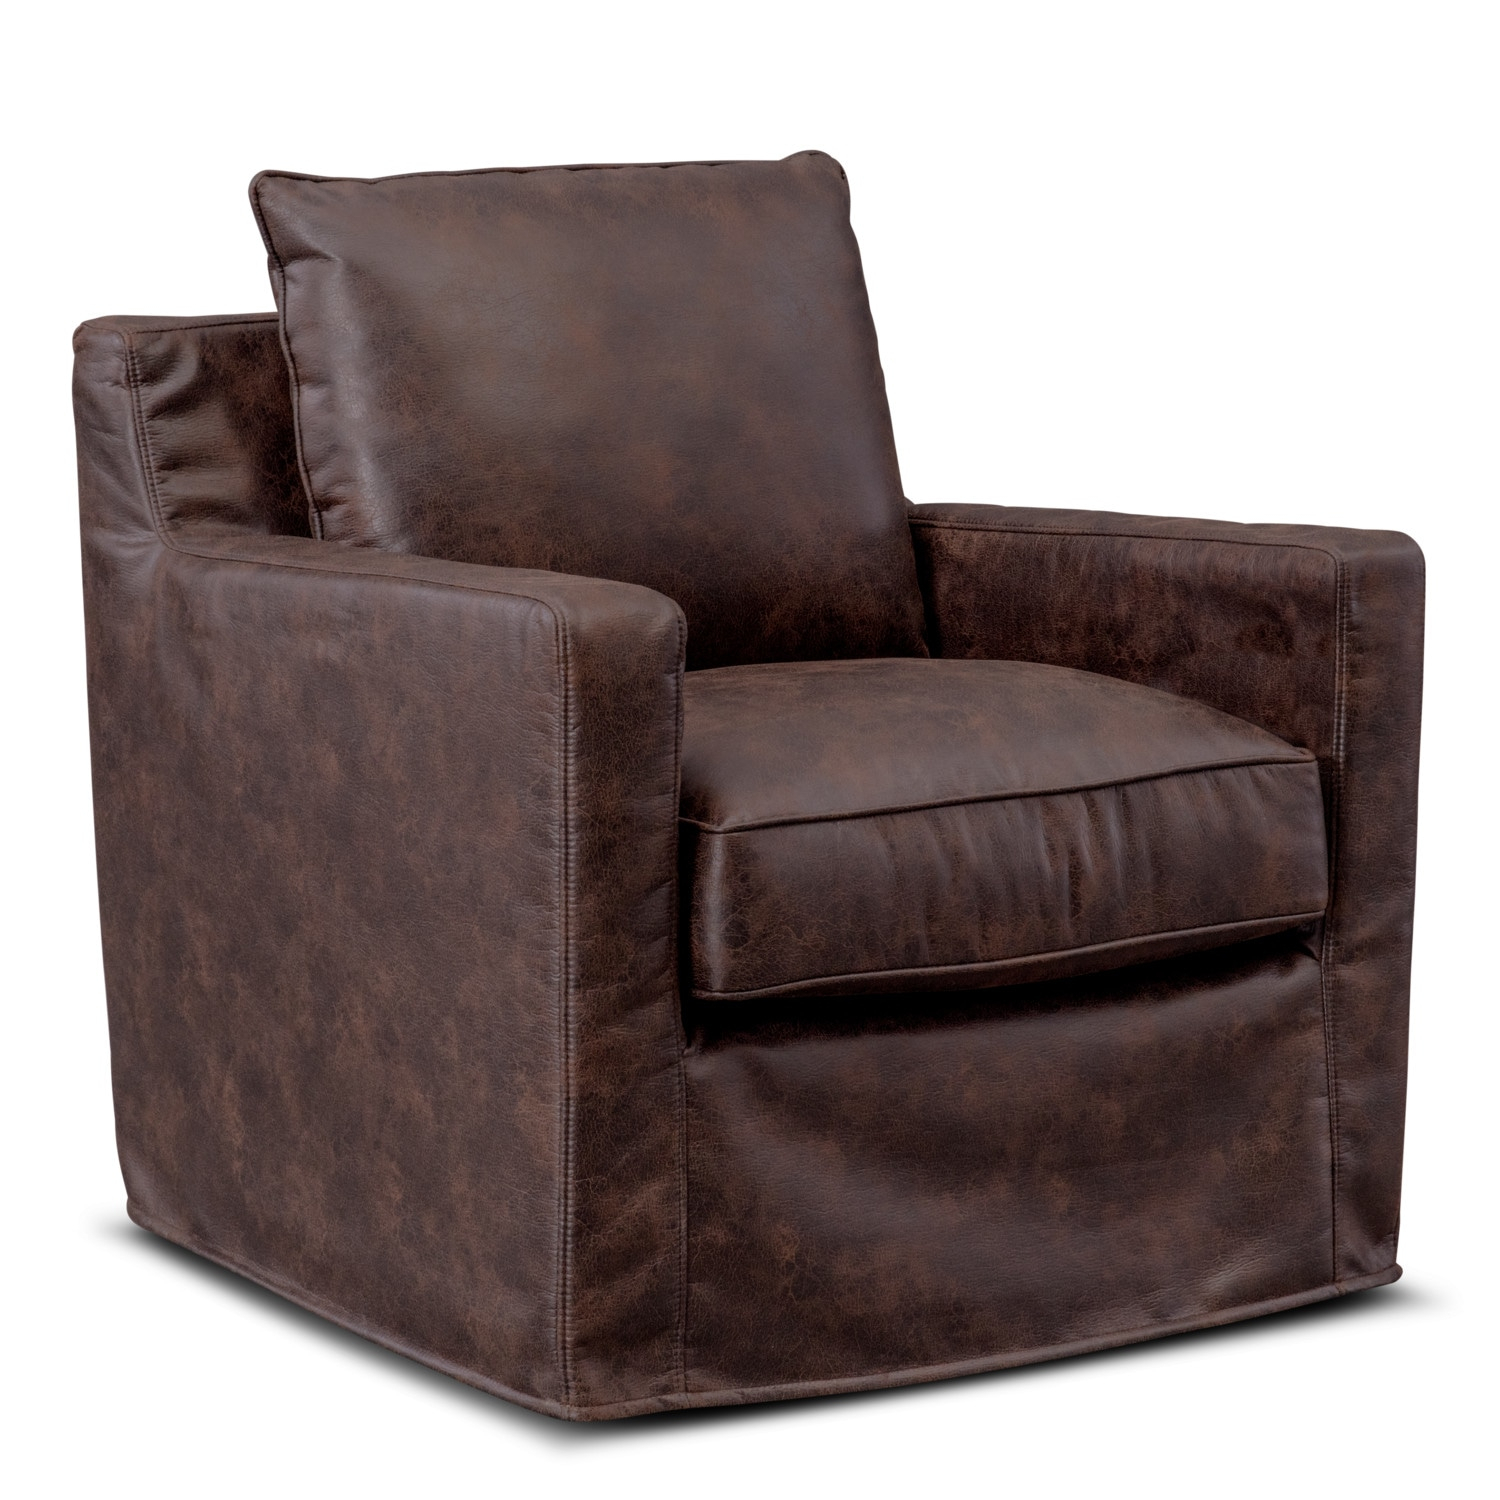 Eastwood Swivel Chair – Coffee | American Signature Furniture In Loft Black Swivel Accent Chairs (View 13 of 25)